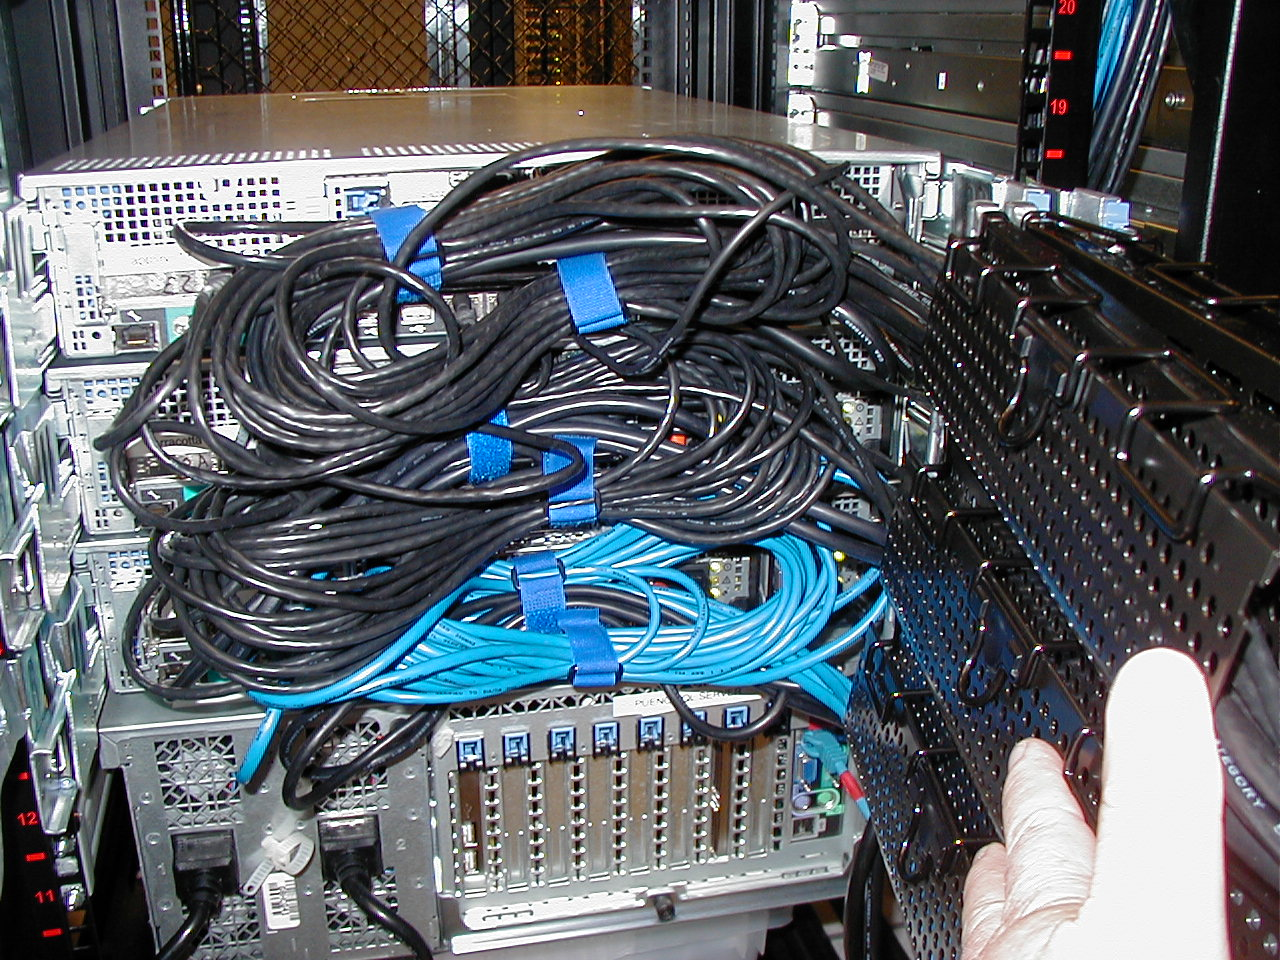 hight resolution of file dell server poor wiring jpg